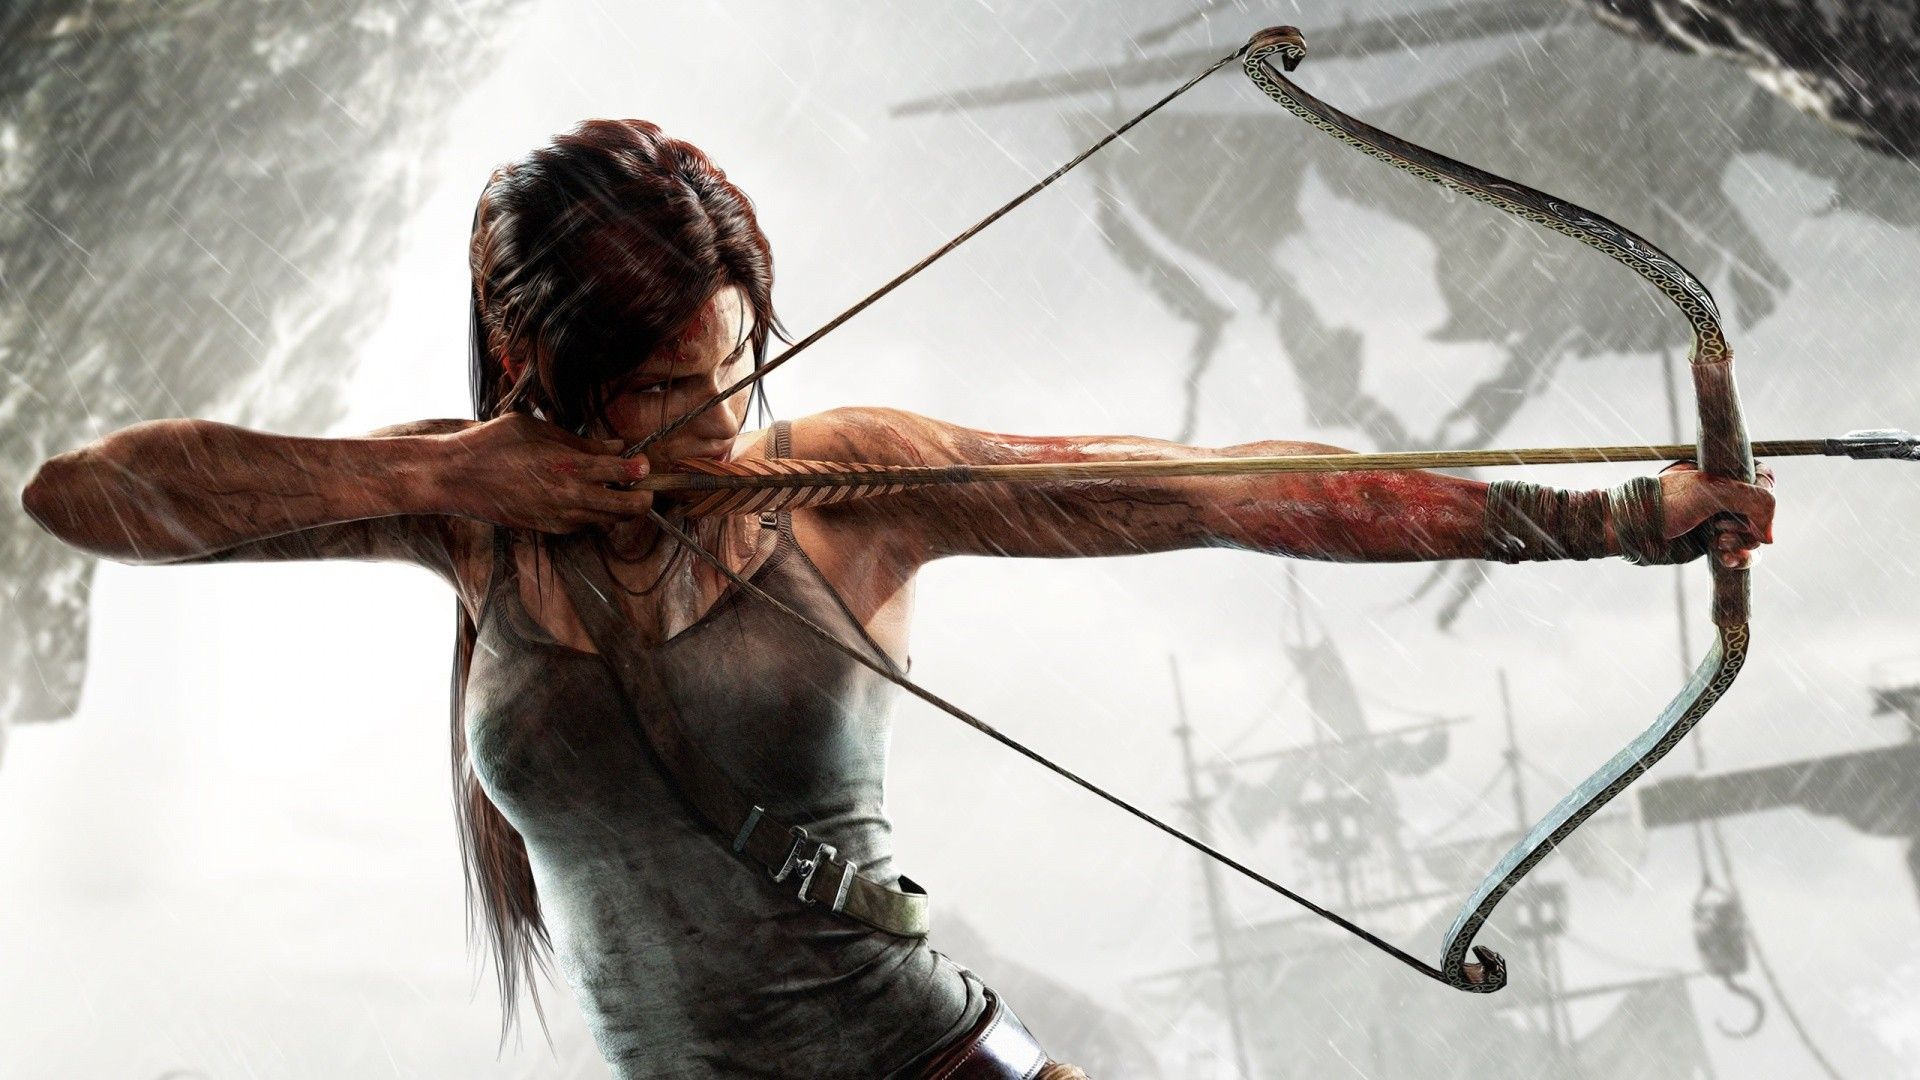 Lara Croft Bow Weapon Tomb Raider 2013 Wallpaper 2769417